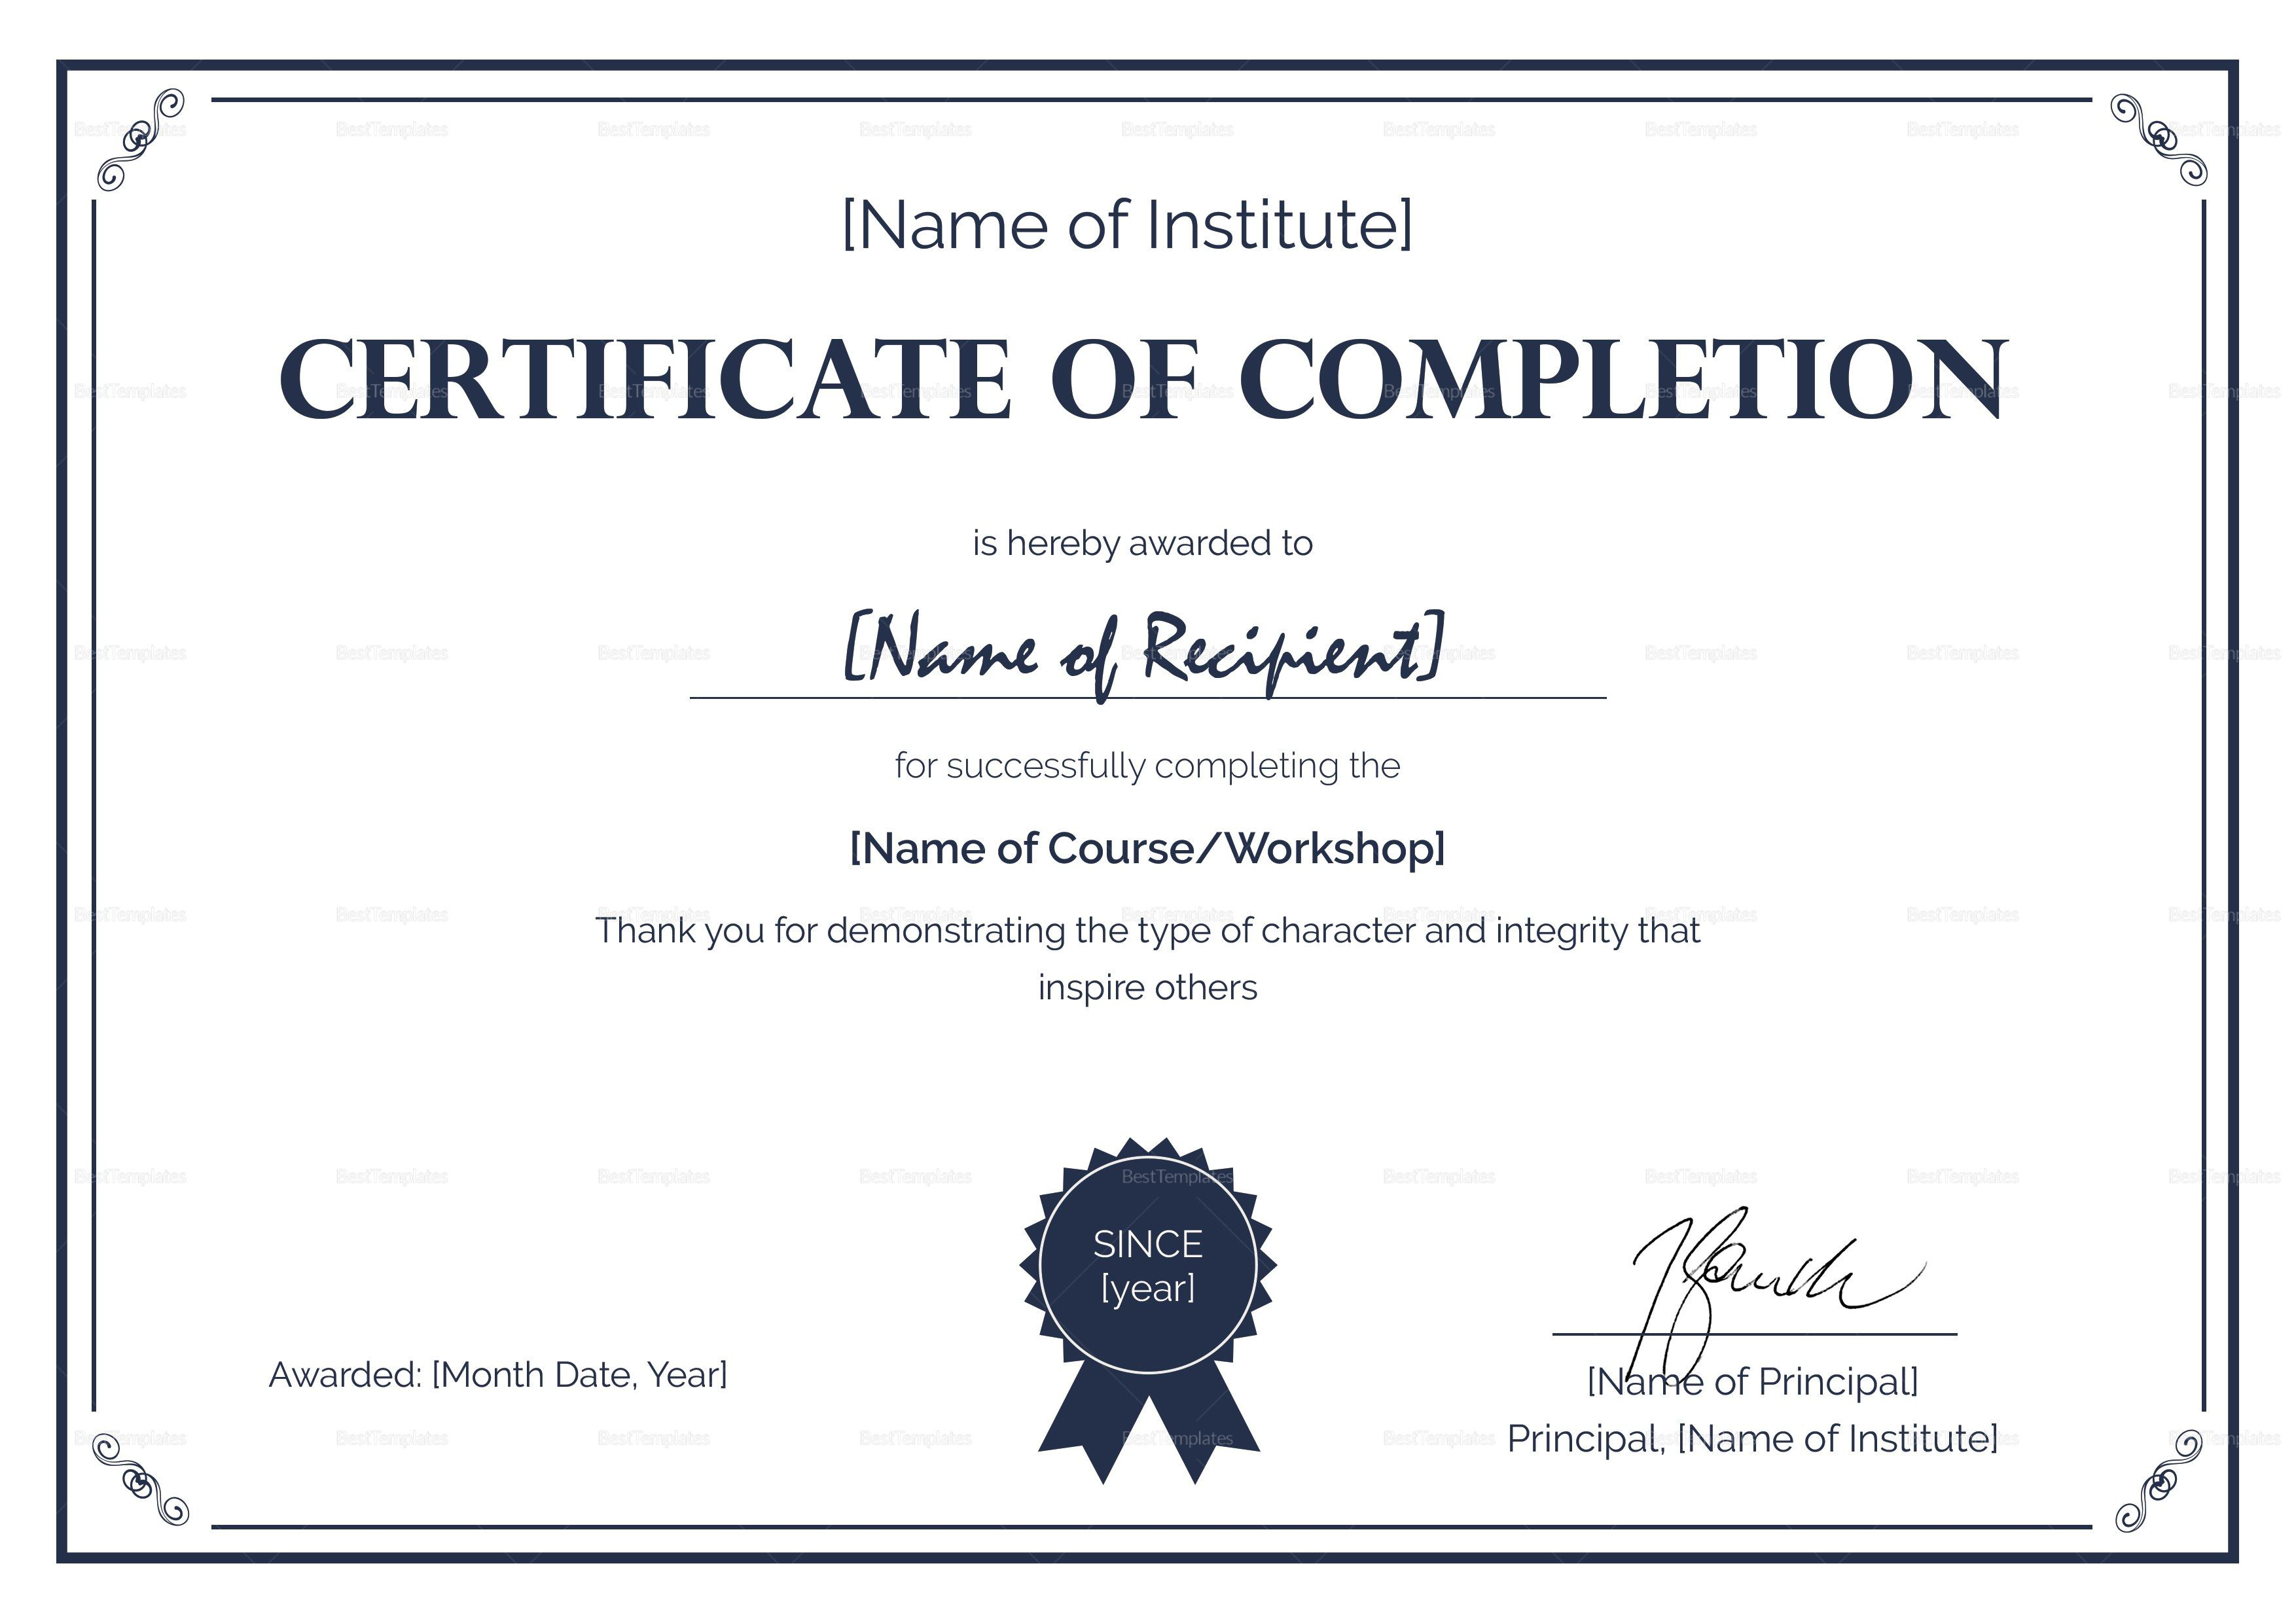 Certificate Of Completion Makeup Certificate Template Rose Etsy Certificate Of Completion Certificate Templates Custom Soap Labels